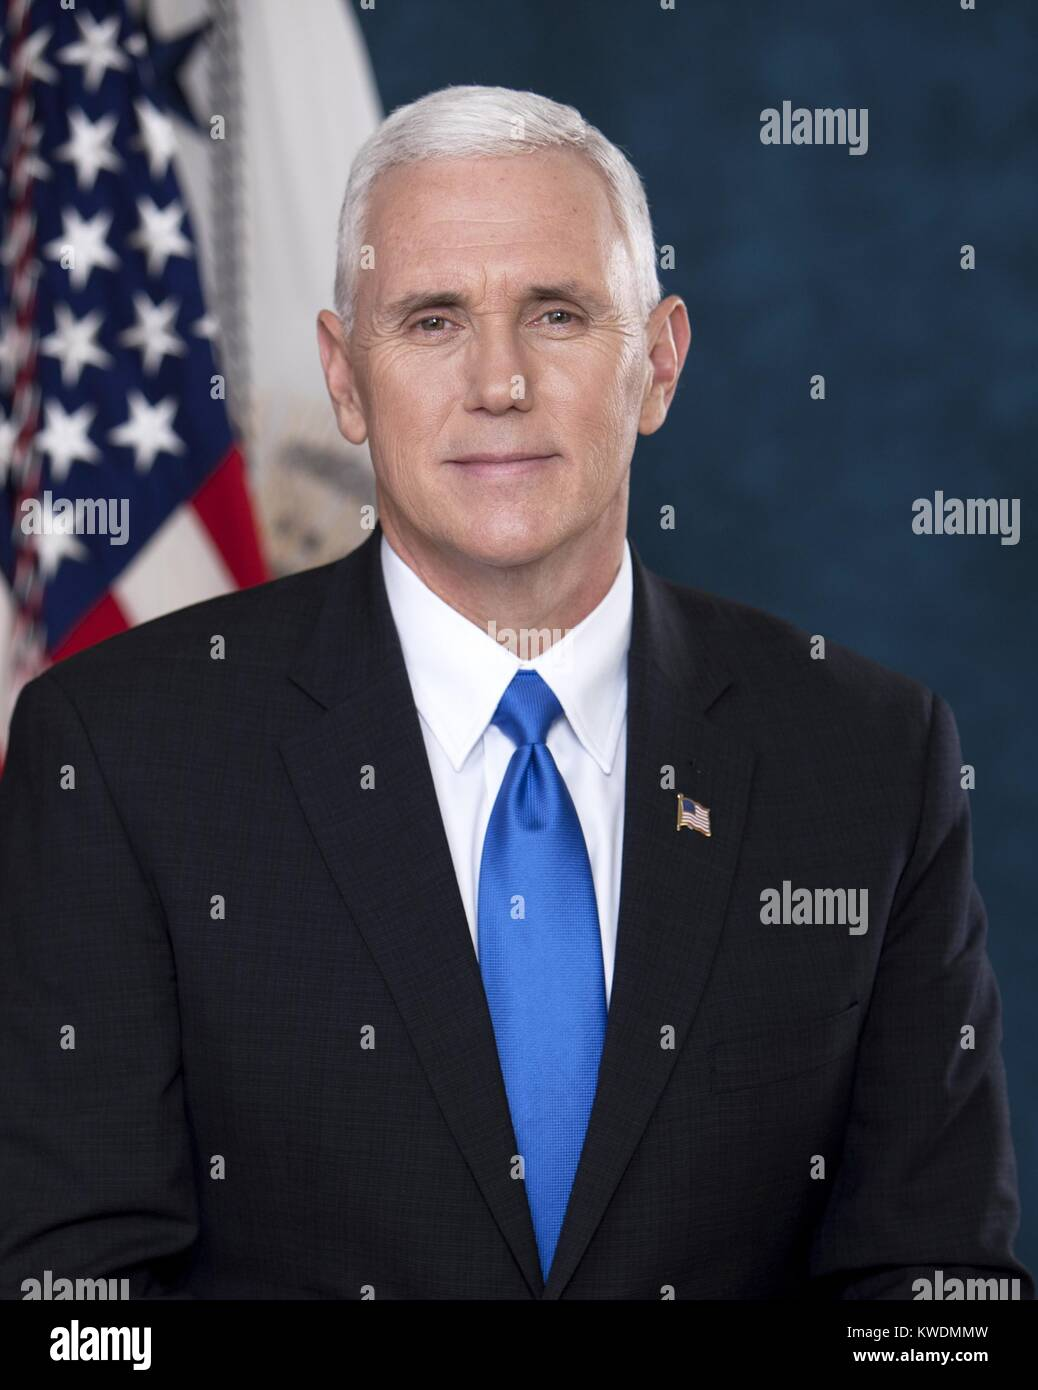 Photo of Vice President-elect Mike Pence taken on 2017-01-28, 2 days before the inauguration. It was posted with - Stock Image